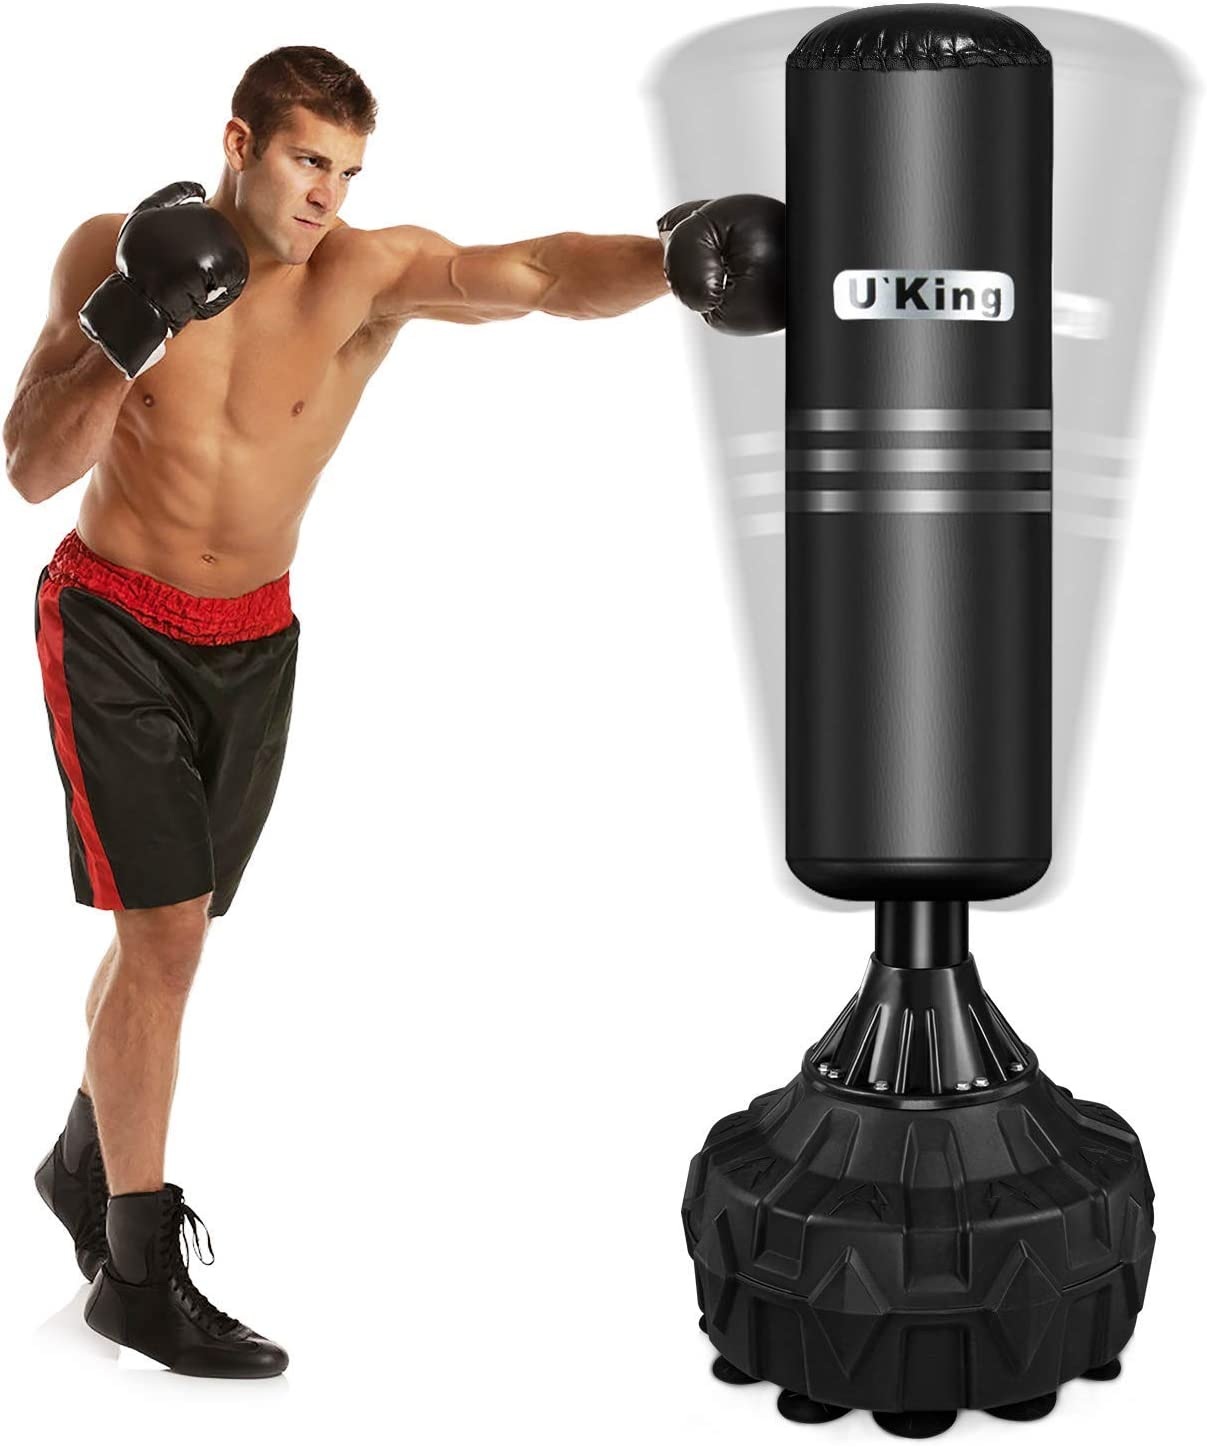 U'king Free Standing Boxing Punch Bag Stand